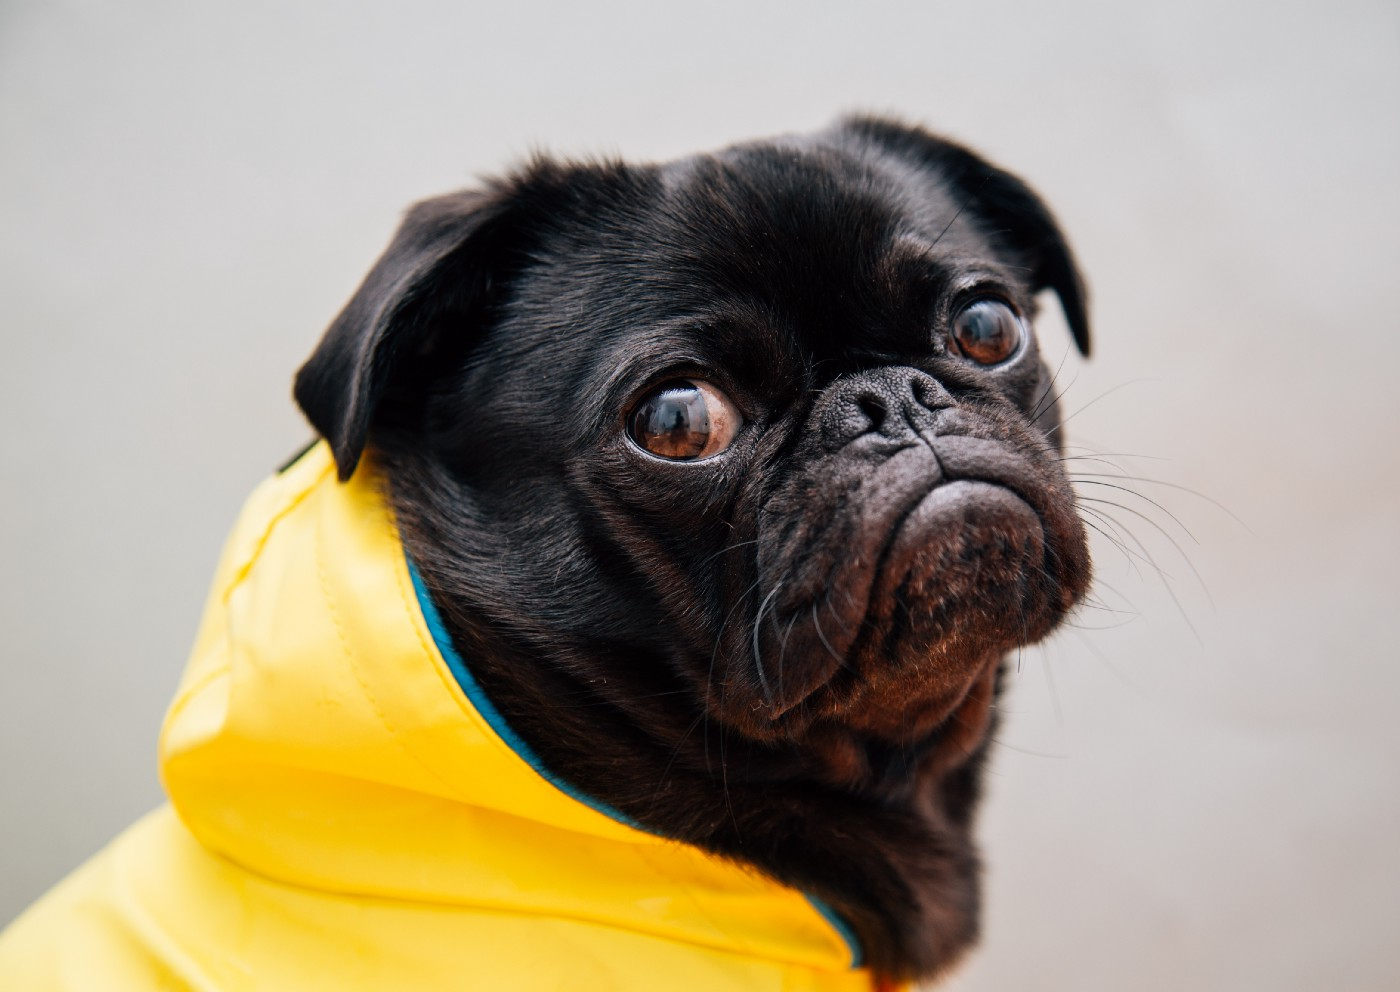 pug dog looking sad